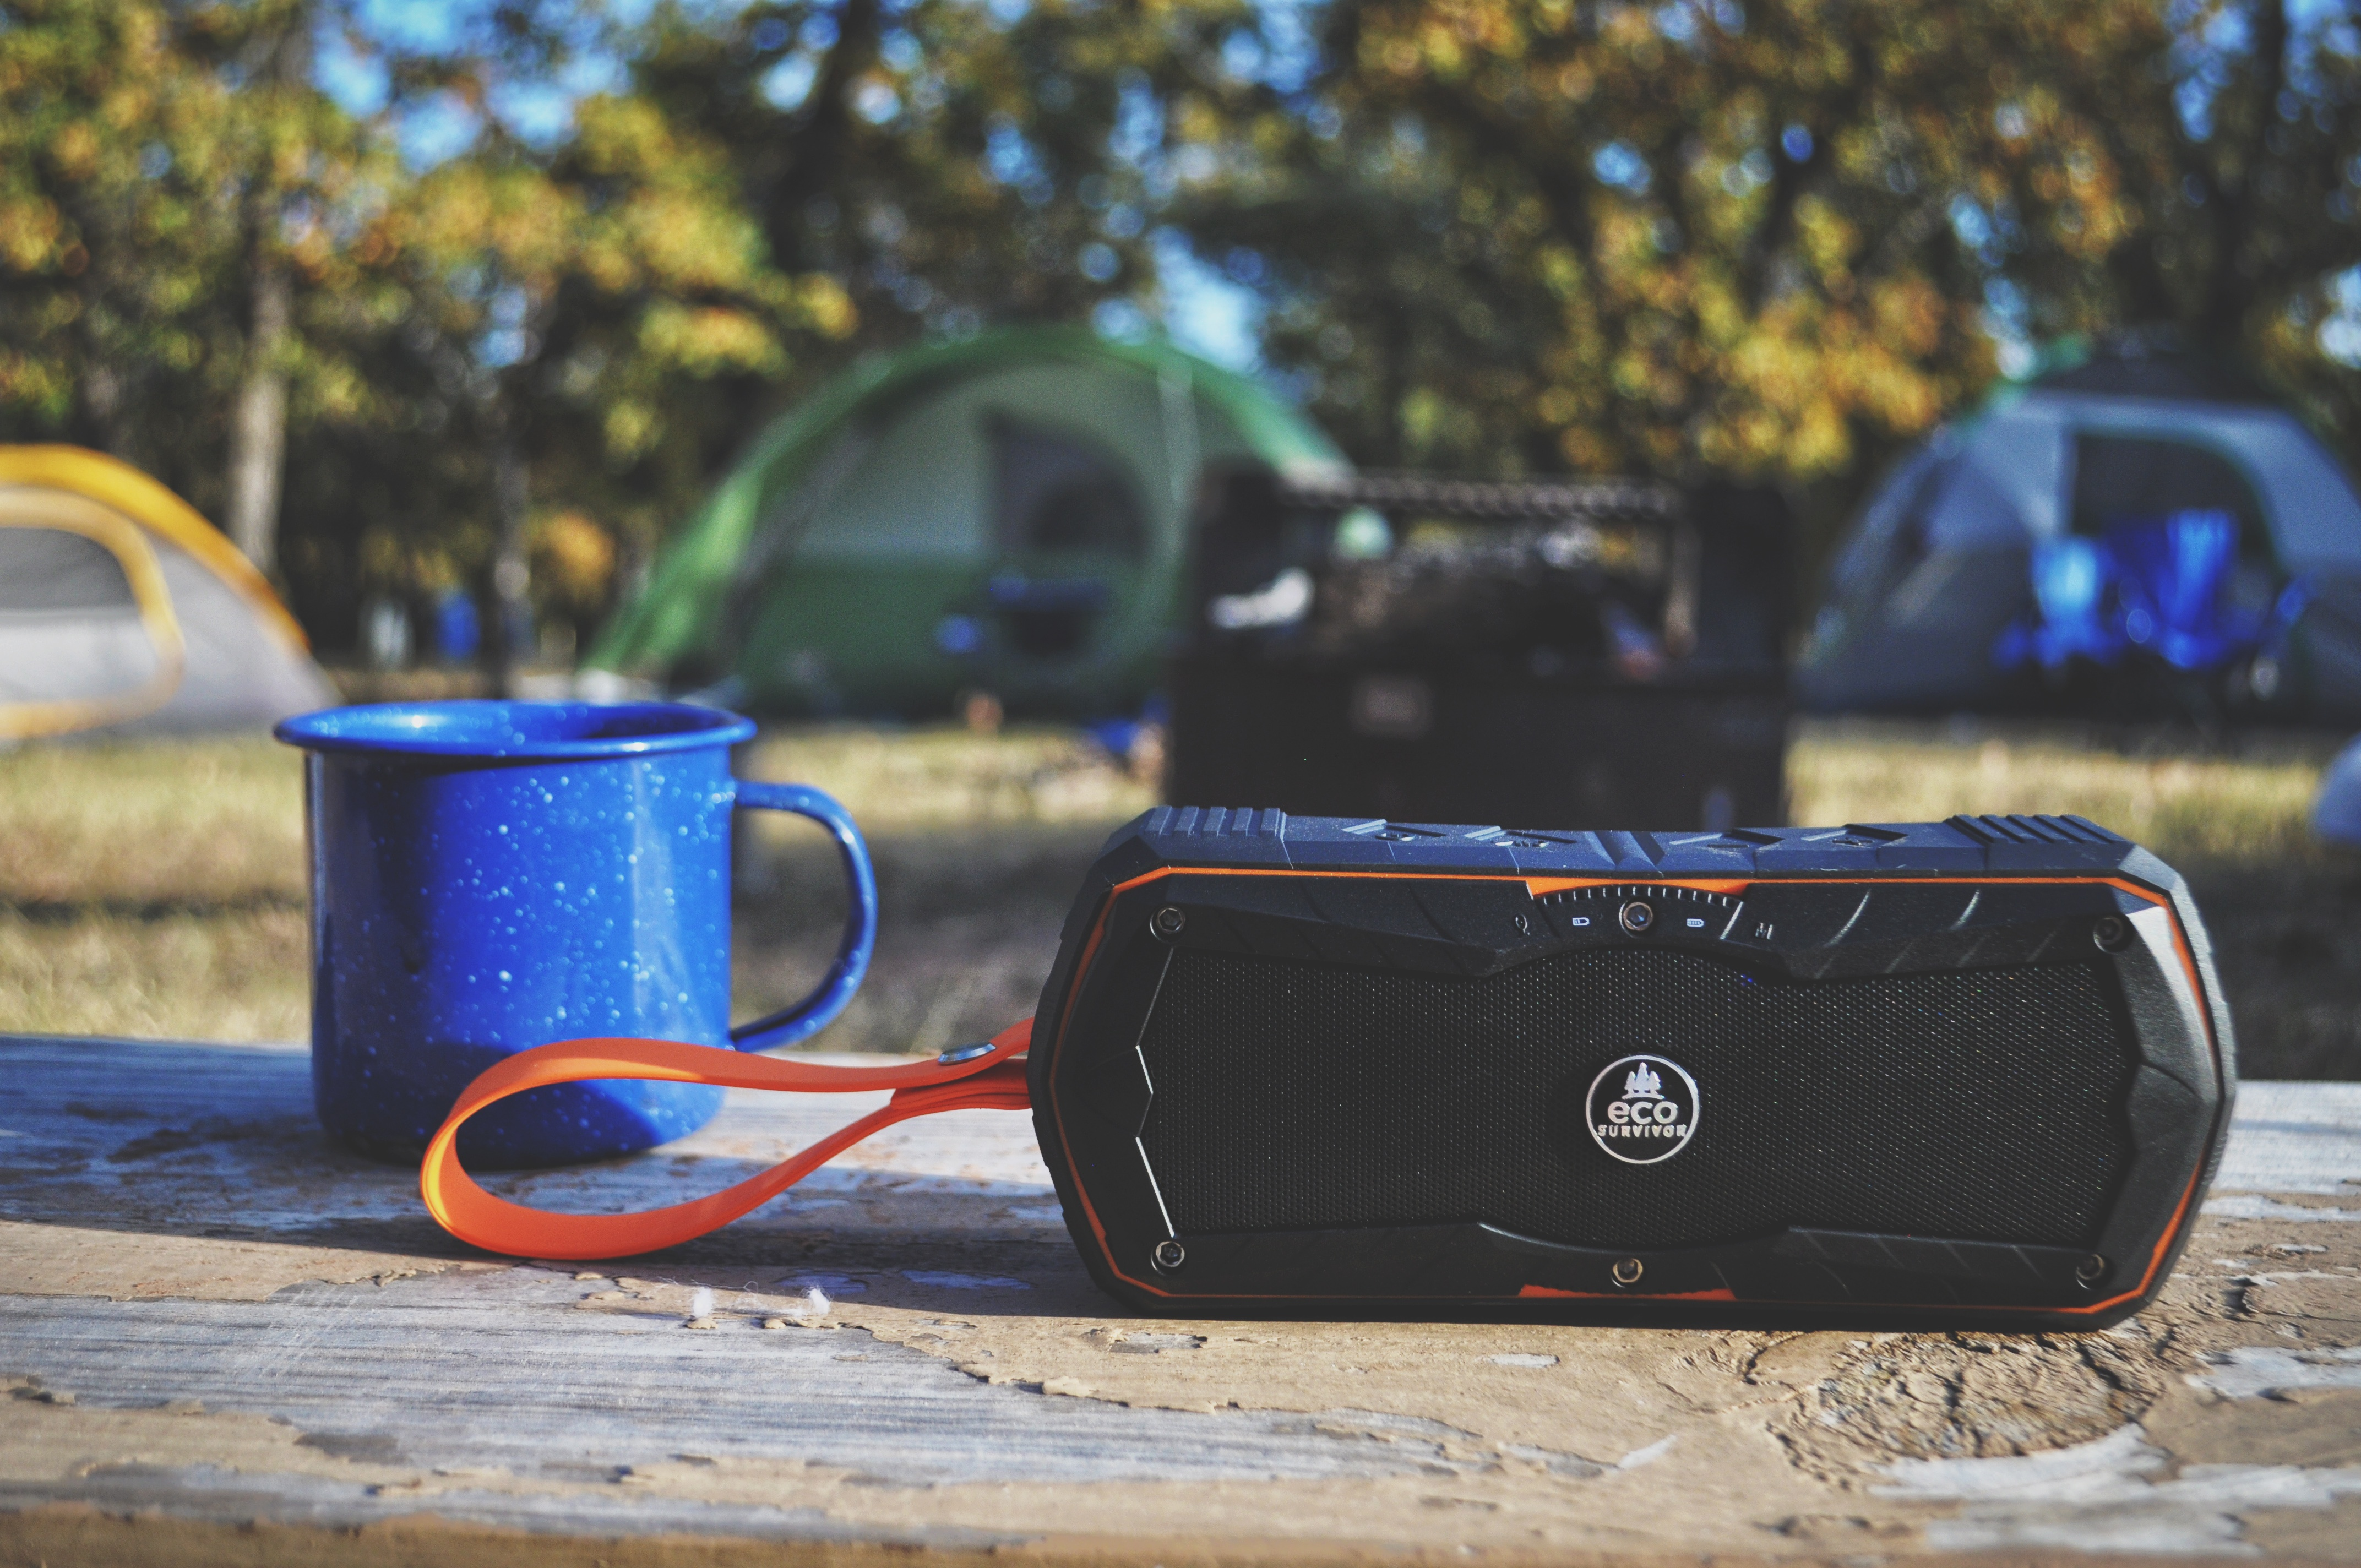 EcoSurvivor Durable Tech Gear for Powering Your Devices